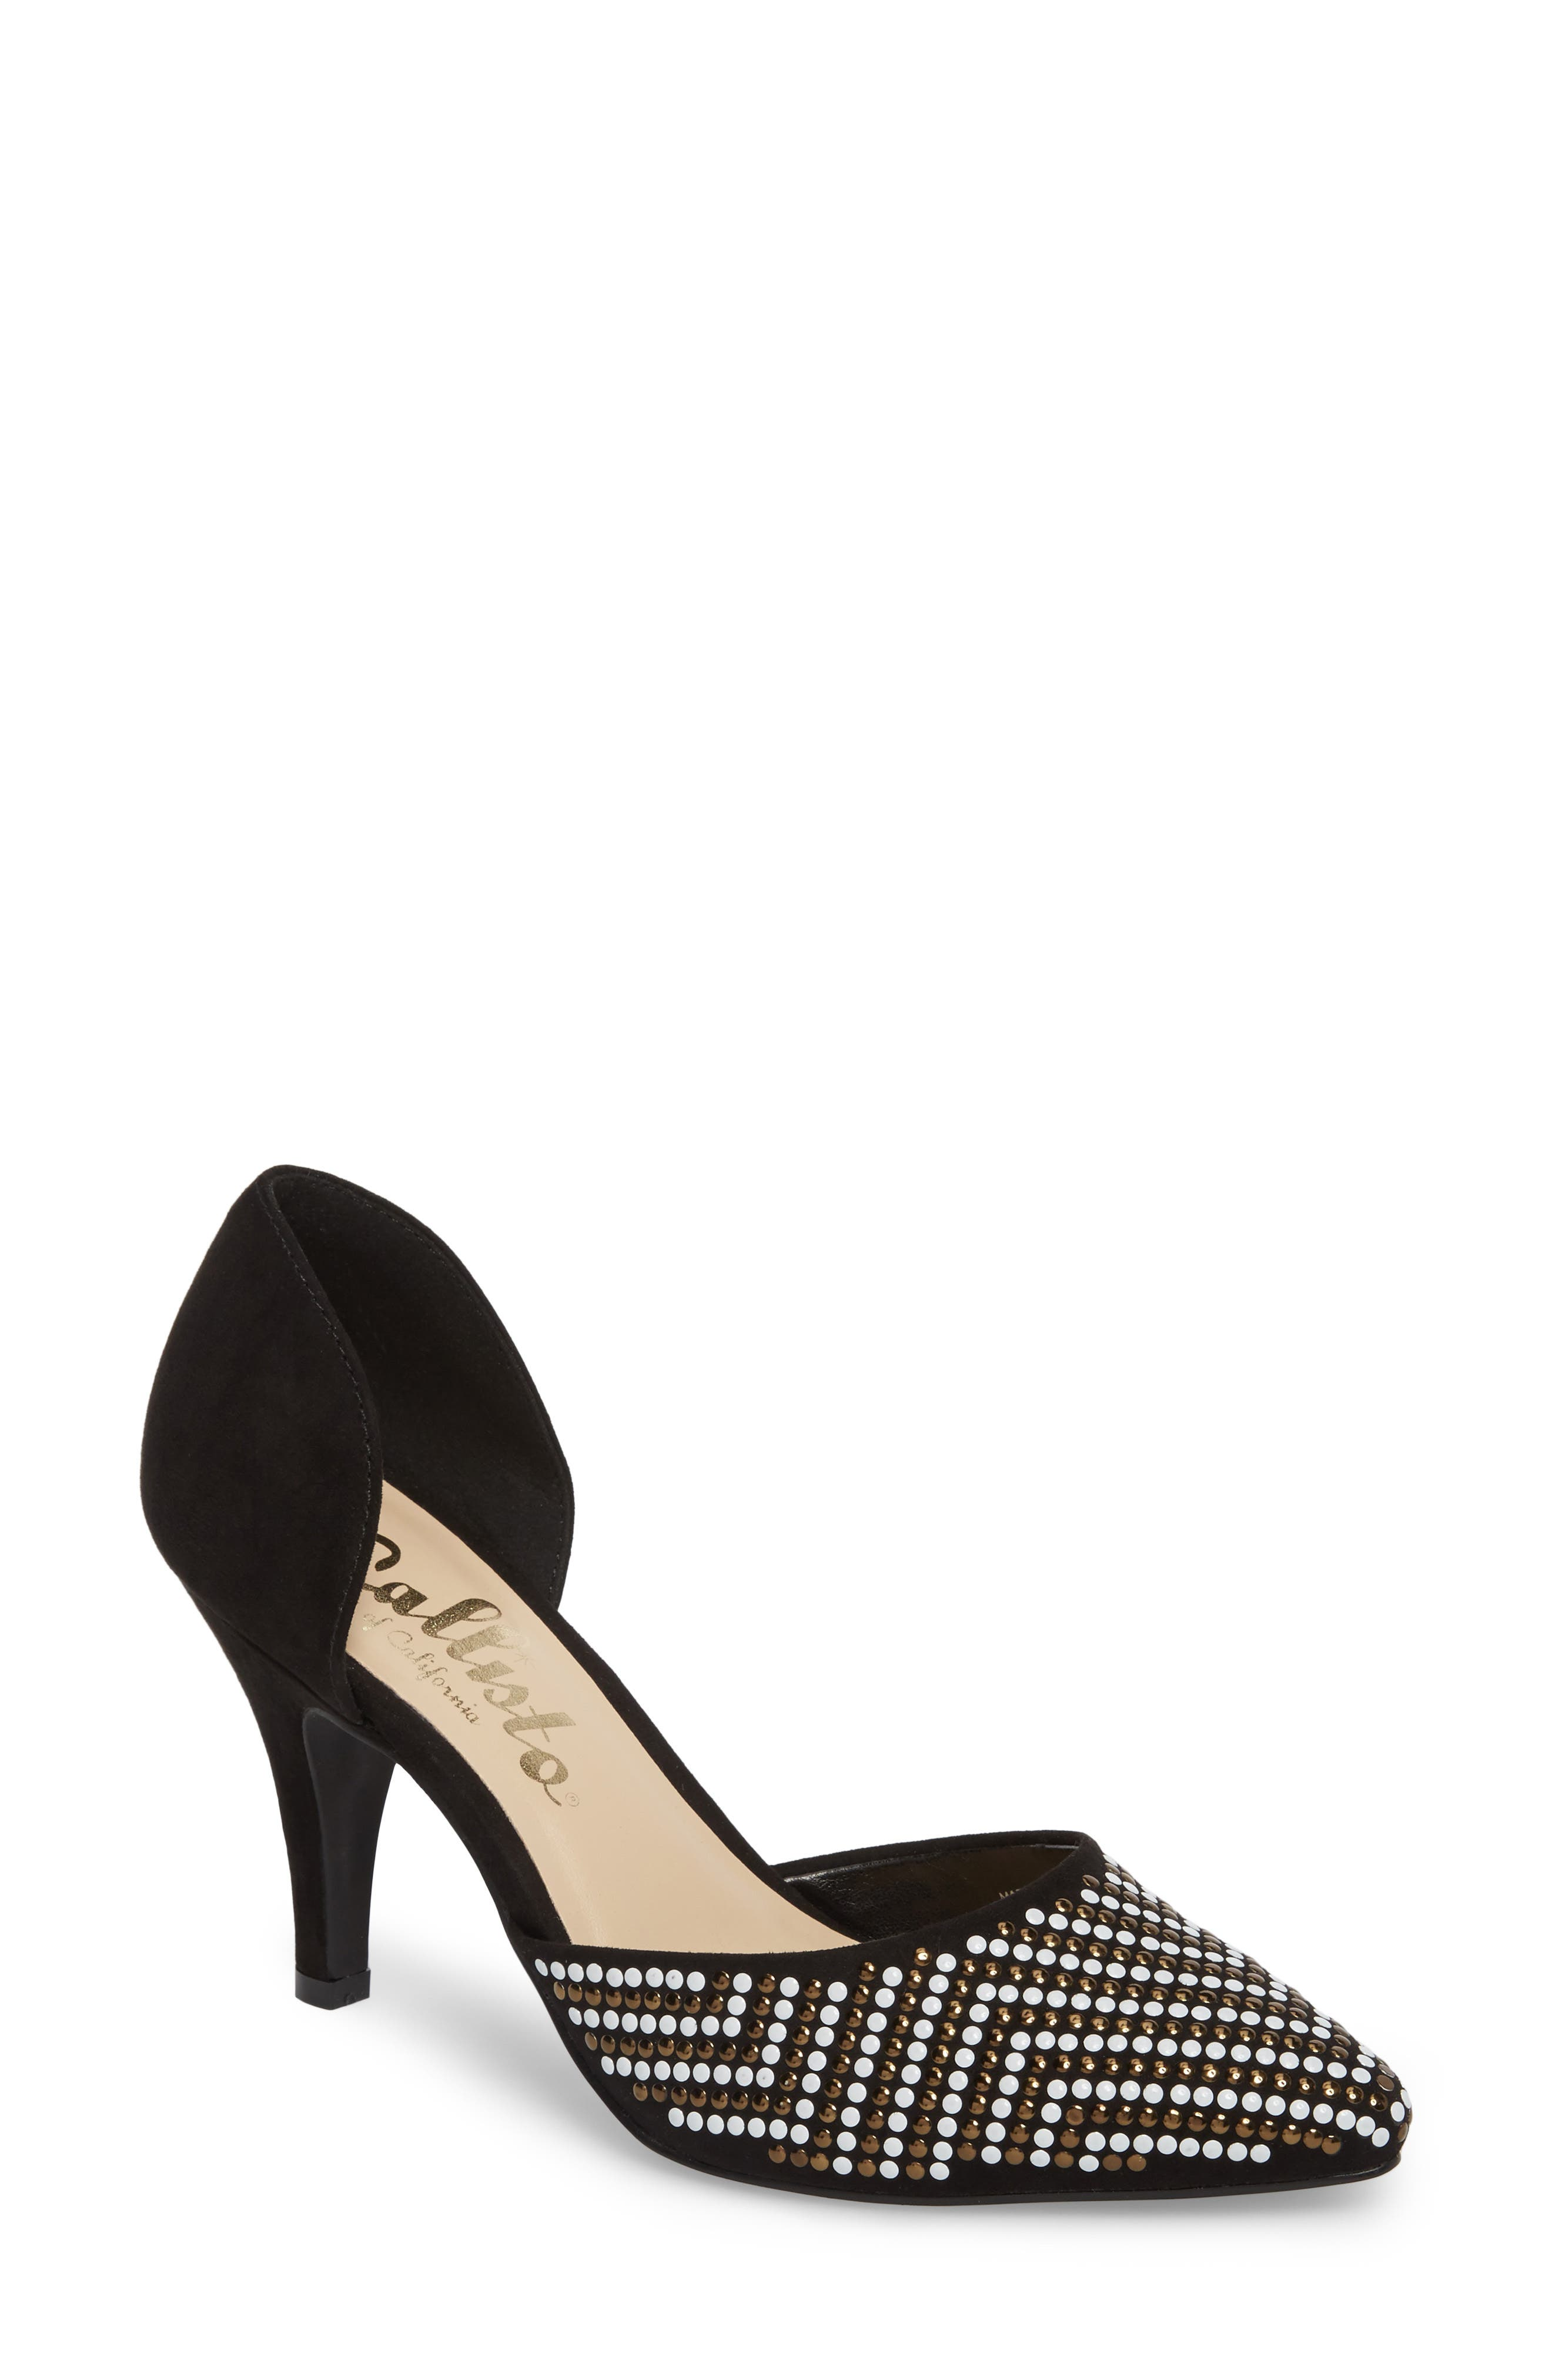 Mimosa Studded d'Orsay Pump,                             Main thumbnail 1, color,                             BLACK SUEDE